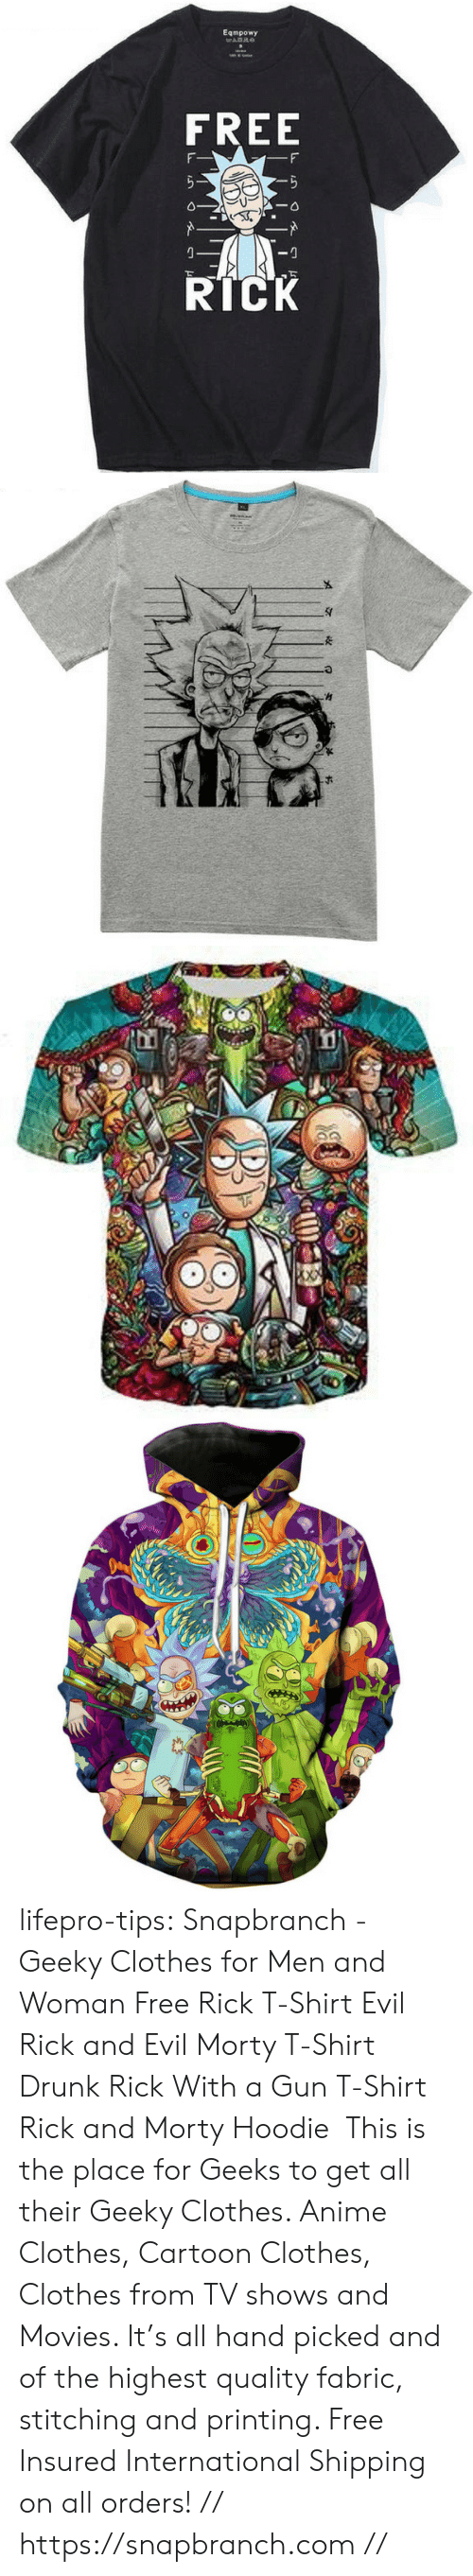 Anime, Bad, and Clothes: Eqmpowy  FREE  RICK lifepro-tips:   Snapbranch  - Geeky Clothes  for Men and Woman  Free Rick T-Shirt  Evil Rick and Evil Morty T-Shirt  Drunk Rick With a Gun  T-Shirt   Rick and Morty Hoodie   This is the place for Geeks to get all their Geeky Clothes. Anime Clothes, Cartoon Clothes, Clothes from TV shows and Movies.  It's all hand picked and of the highest quality fabric, stitching and  printing. Free Insured International Shipping on all orders! // https://snapbranch.com //